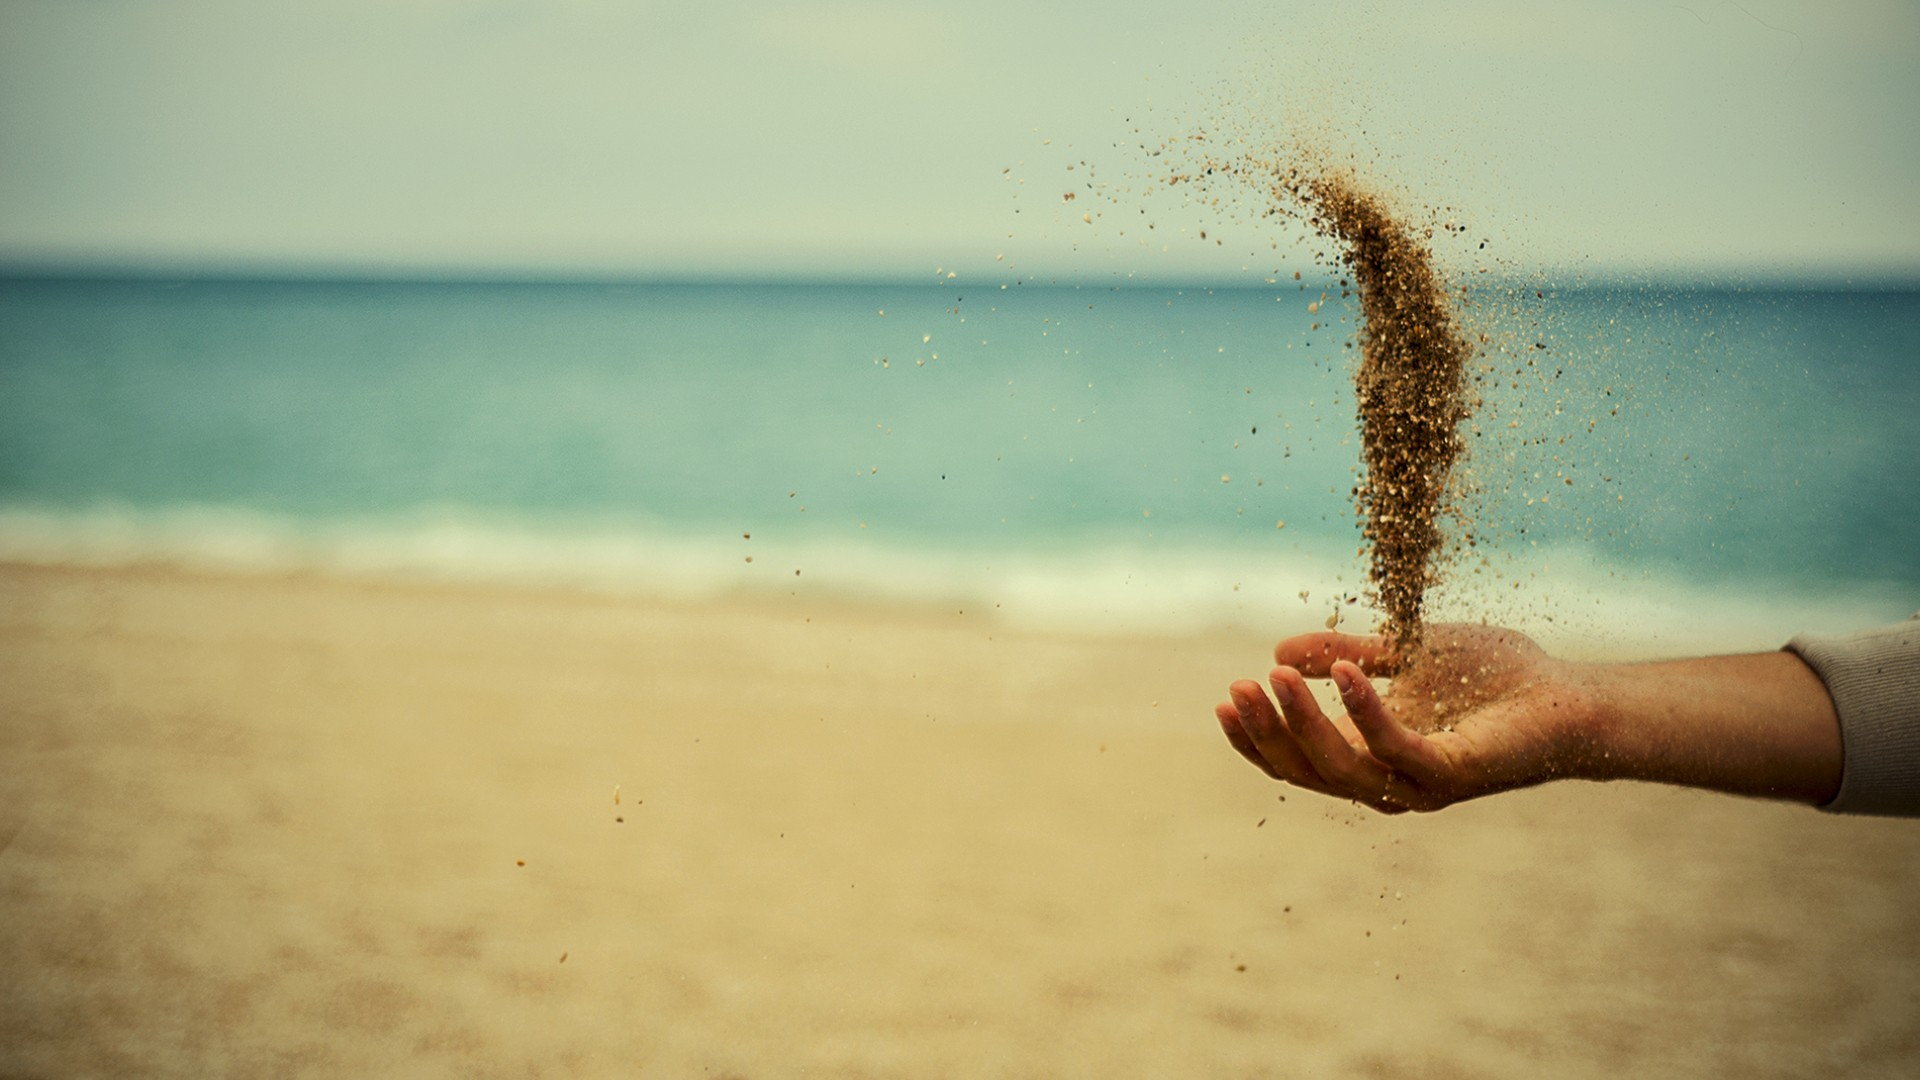 Sand HD Wallpapers  Backgrounds  Wallpaper  1920x1080